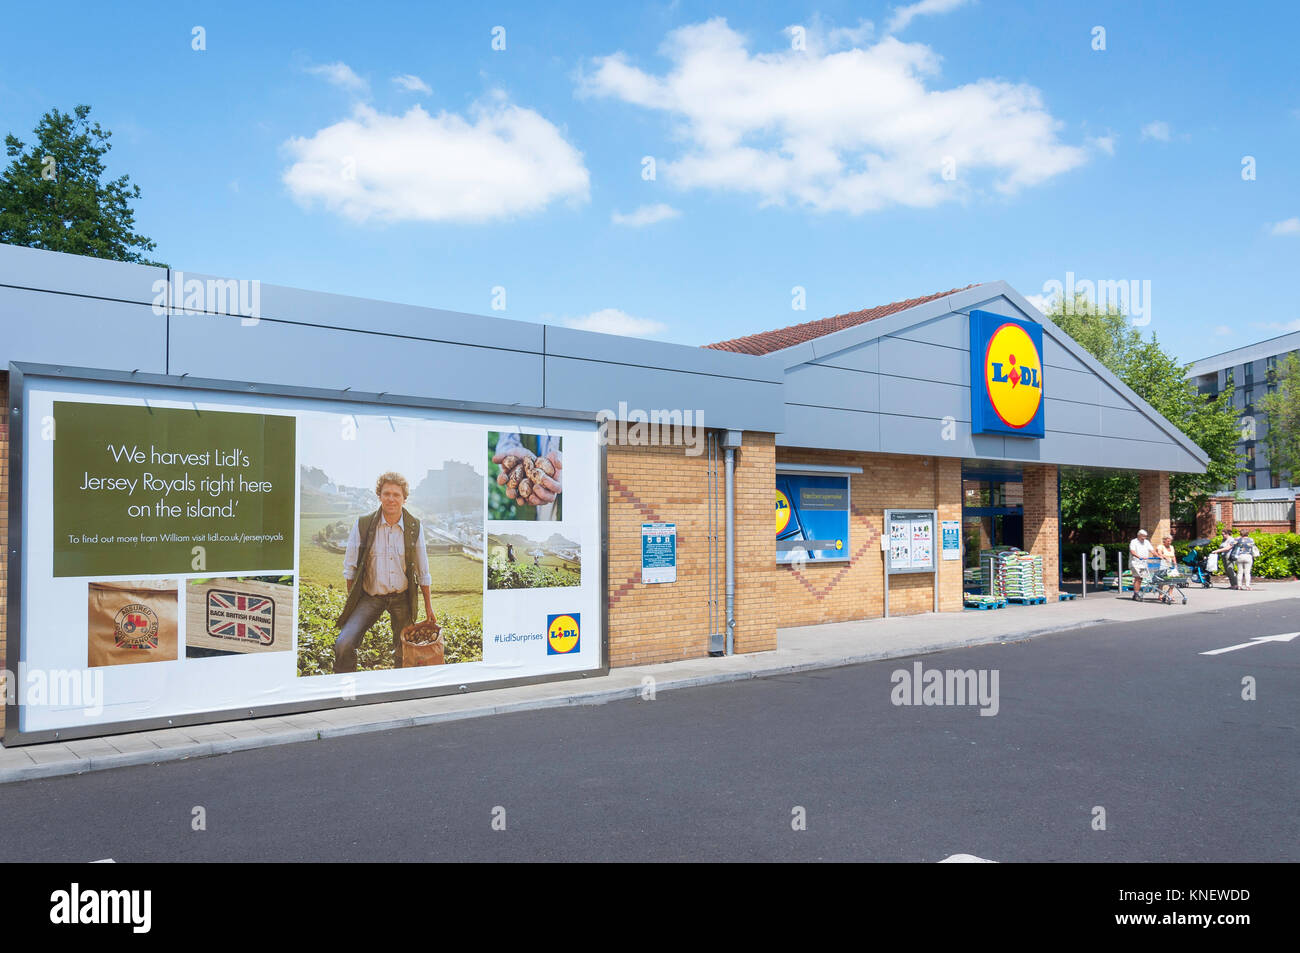 Lidl Supermarket, Western Avenue, Andover, Hampshire, England, United Kingdom - Stock Image